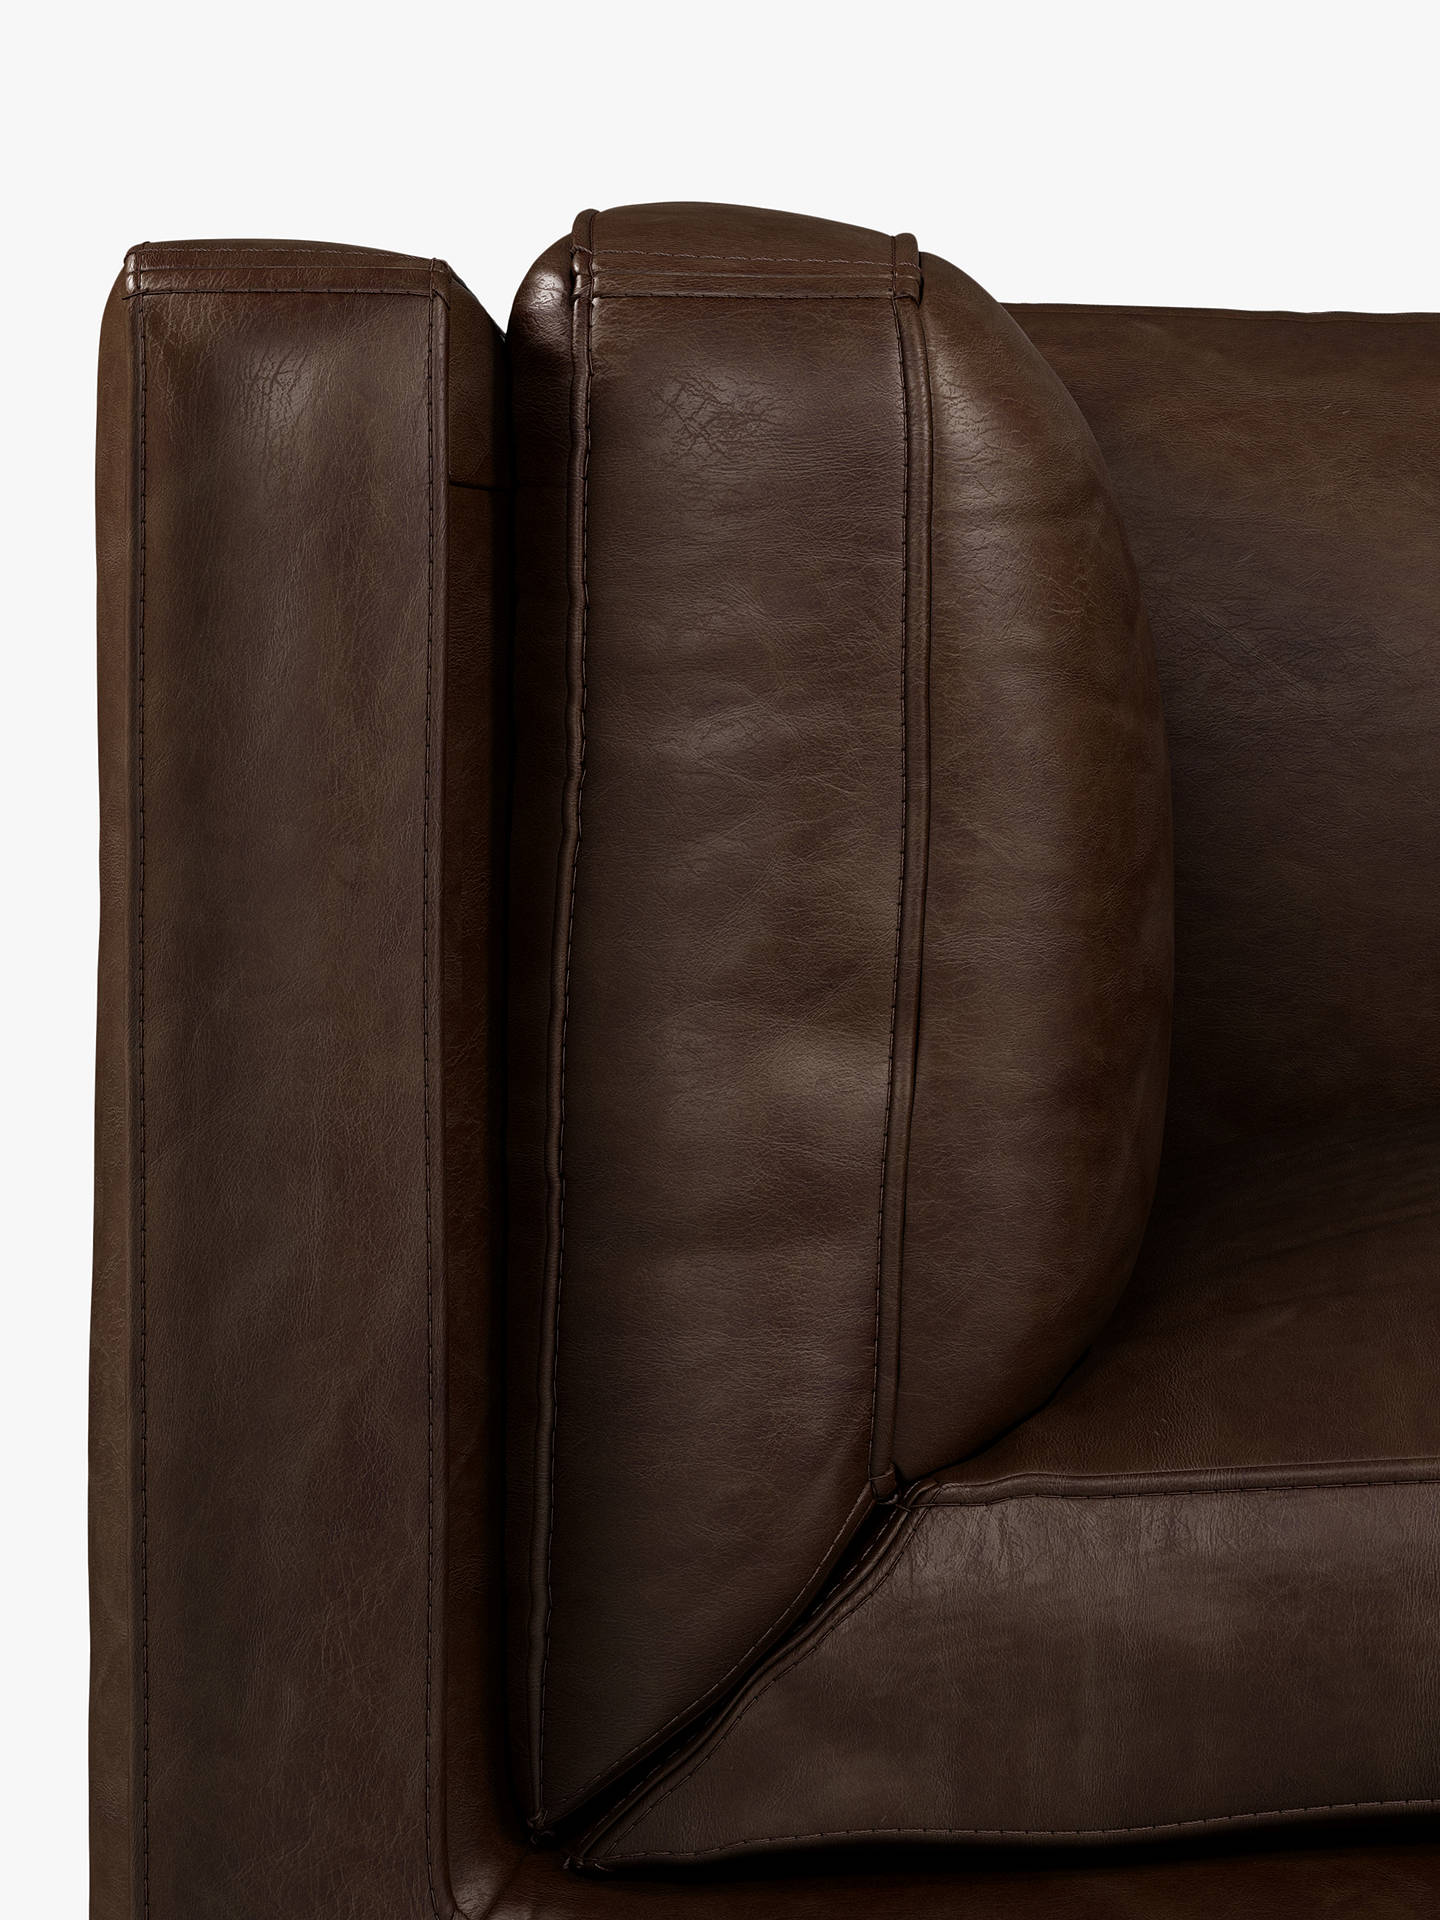 Buy Halo Spencer Large 3 Seater Leather Sofa, Antique Whisky Online at johnlewis.com